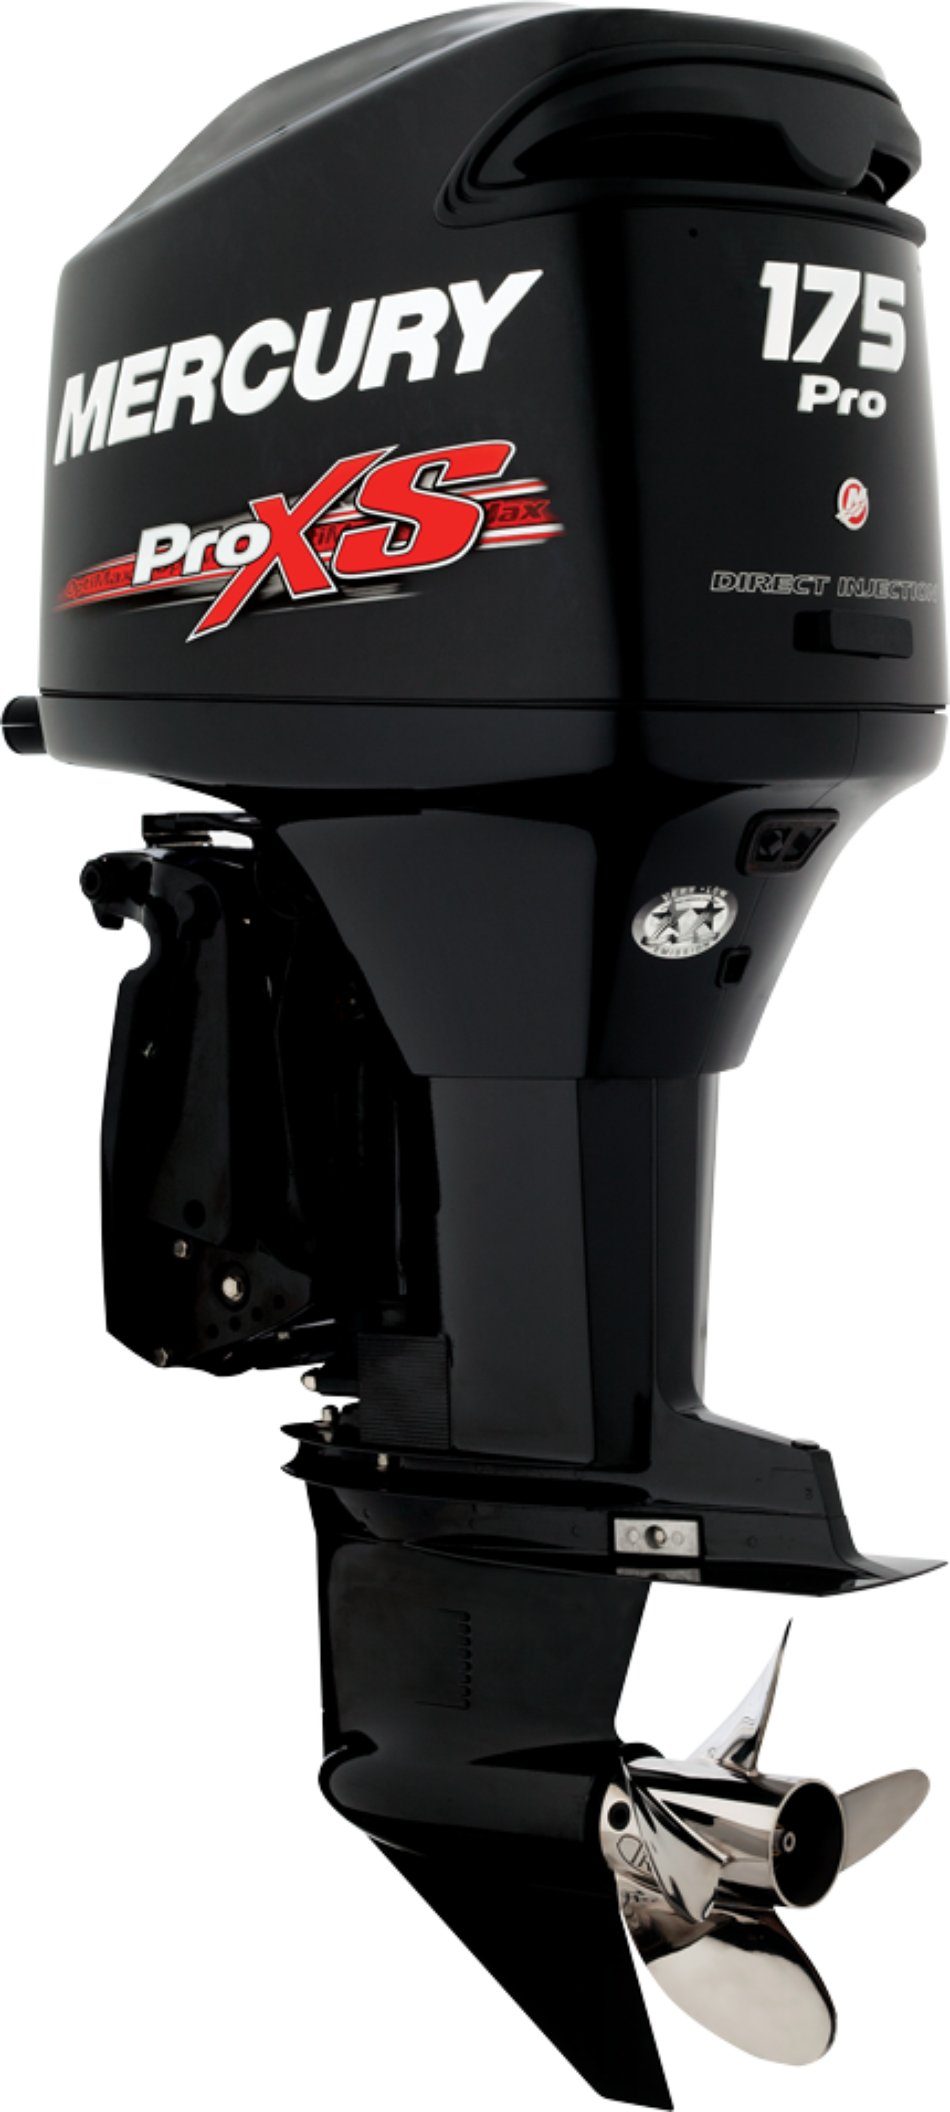 The 2.5, 175 Pro XS is economical, light and powerful, producing approximately 195 HP.